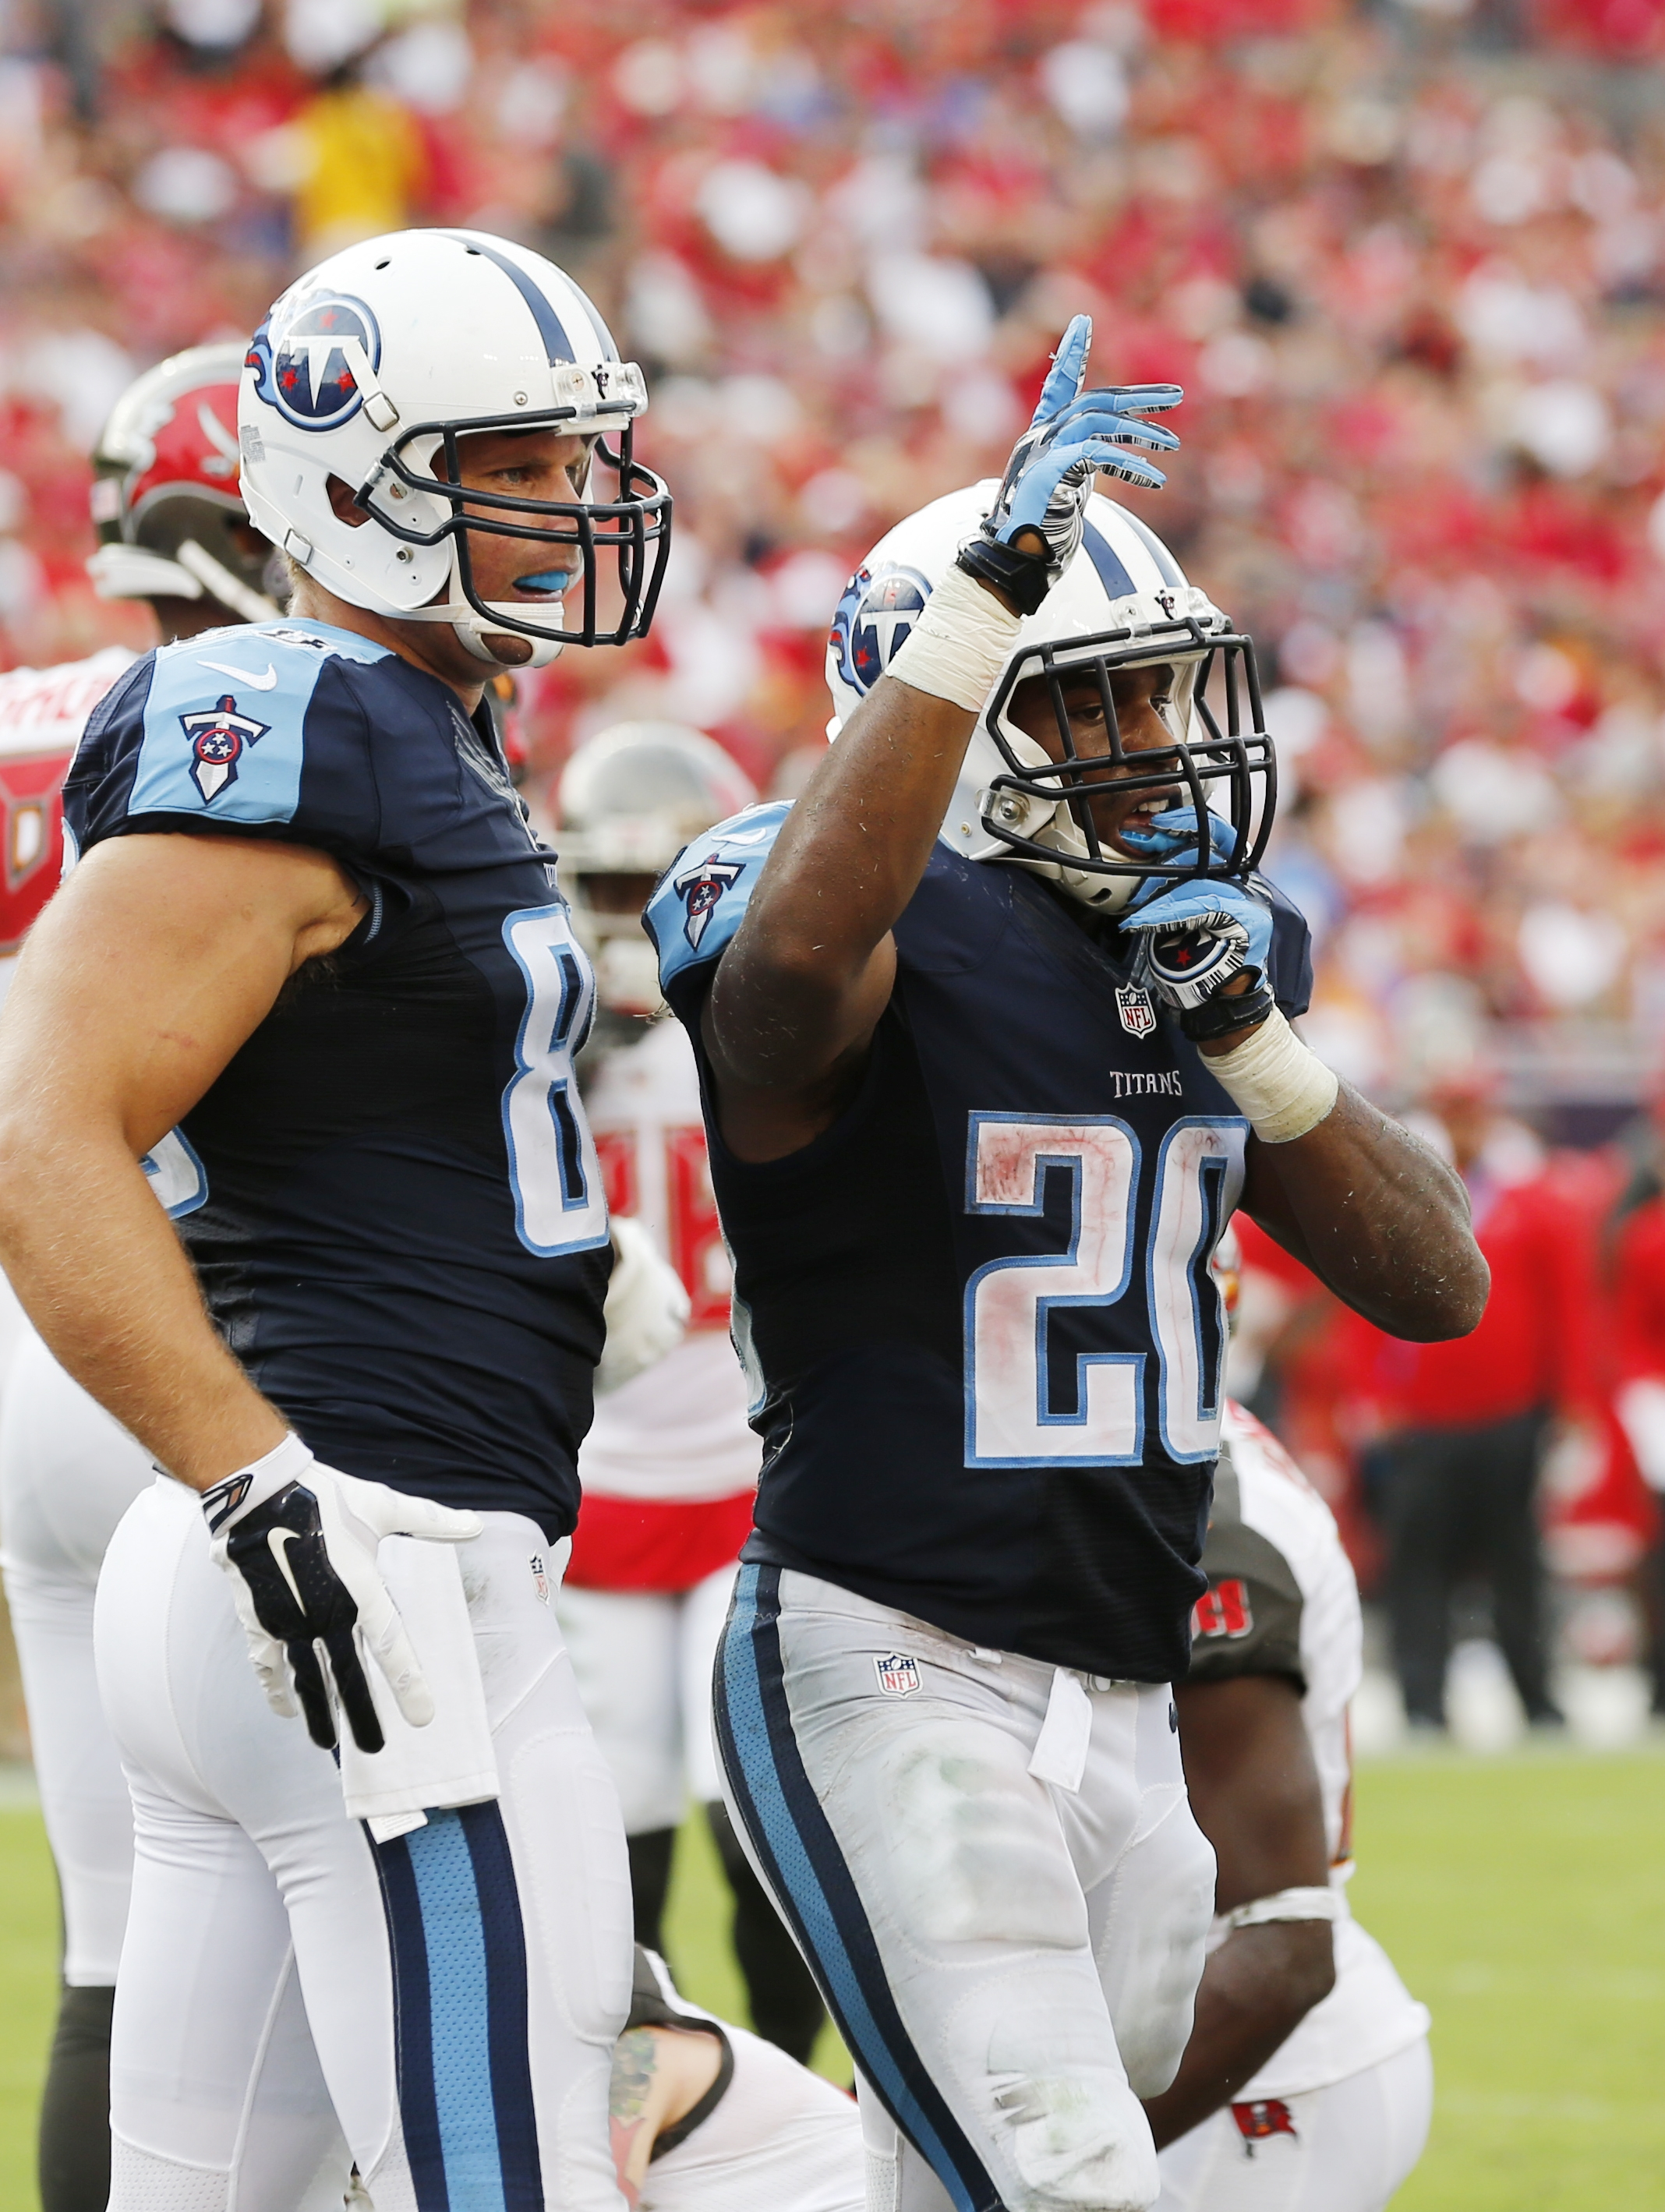 Tennessee Titans running back Bishop Sankey (20) celebrates a touchdown during the second half of an NFL football game against the Tampa Bay Buccaneers, Sunday, Sept. 13, 2015, in Tampa, Fla. (AP Photo/Scott Audette)